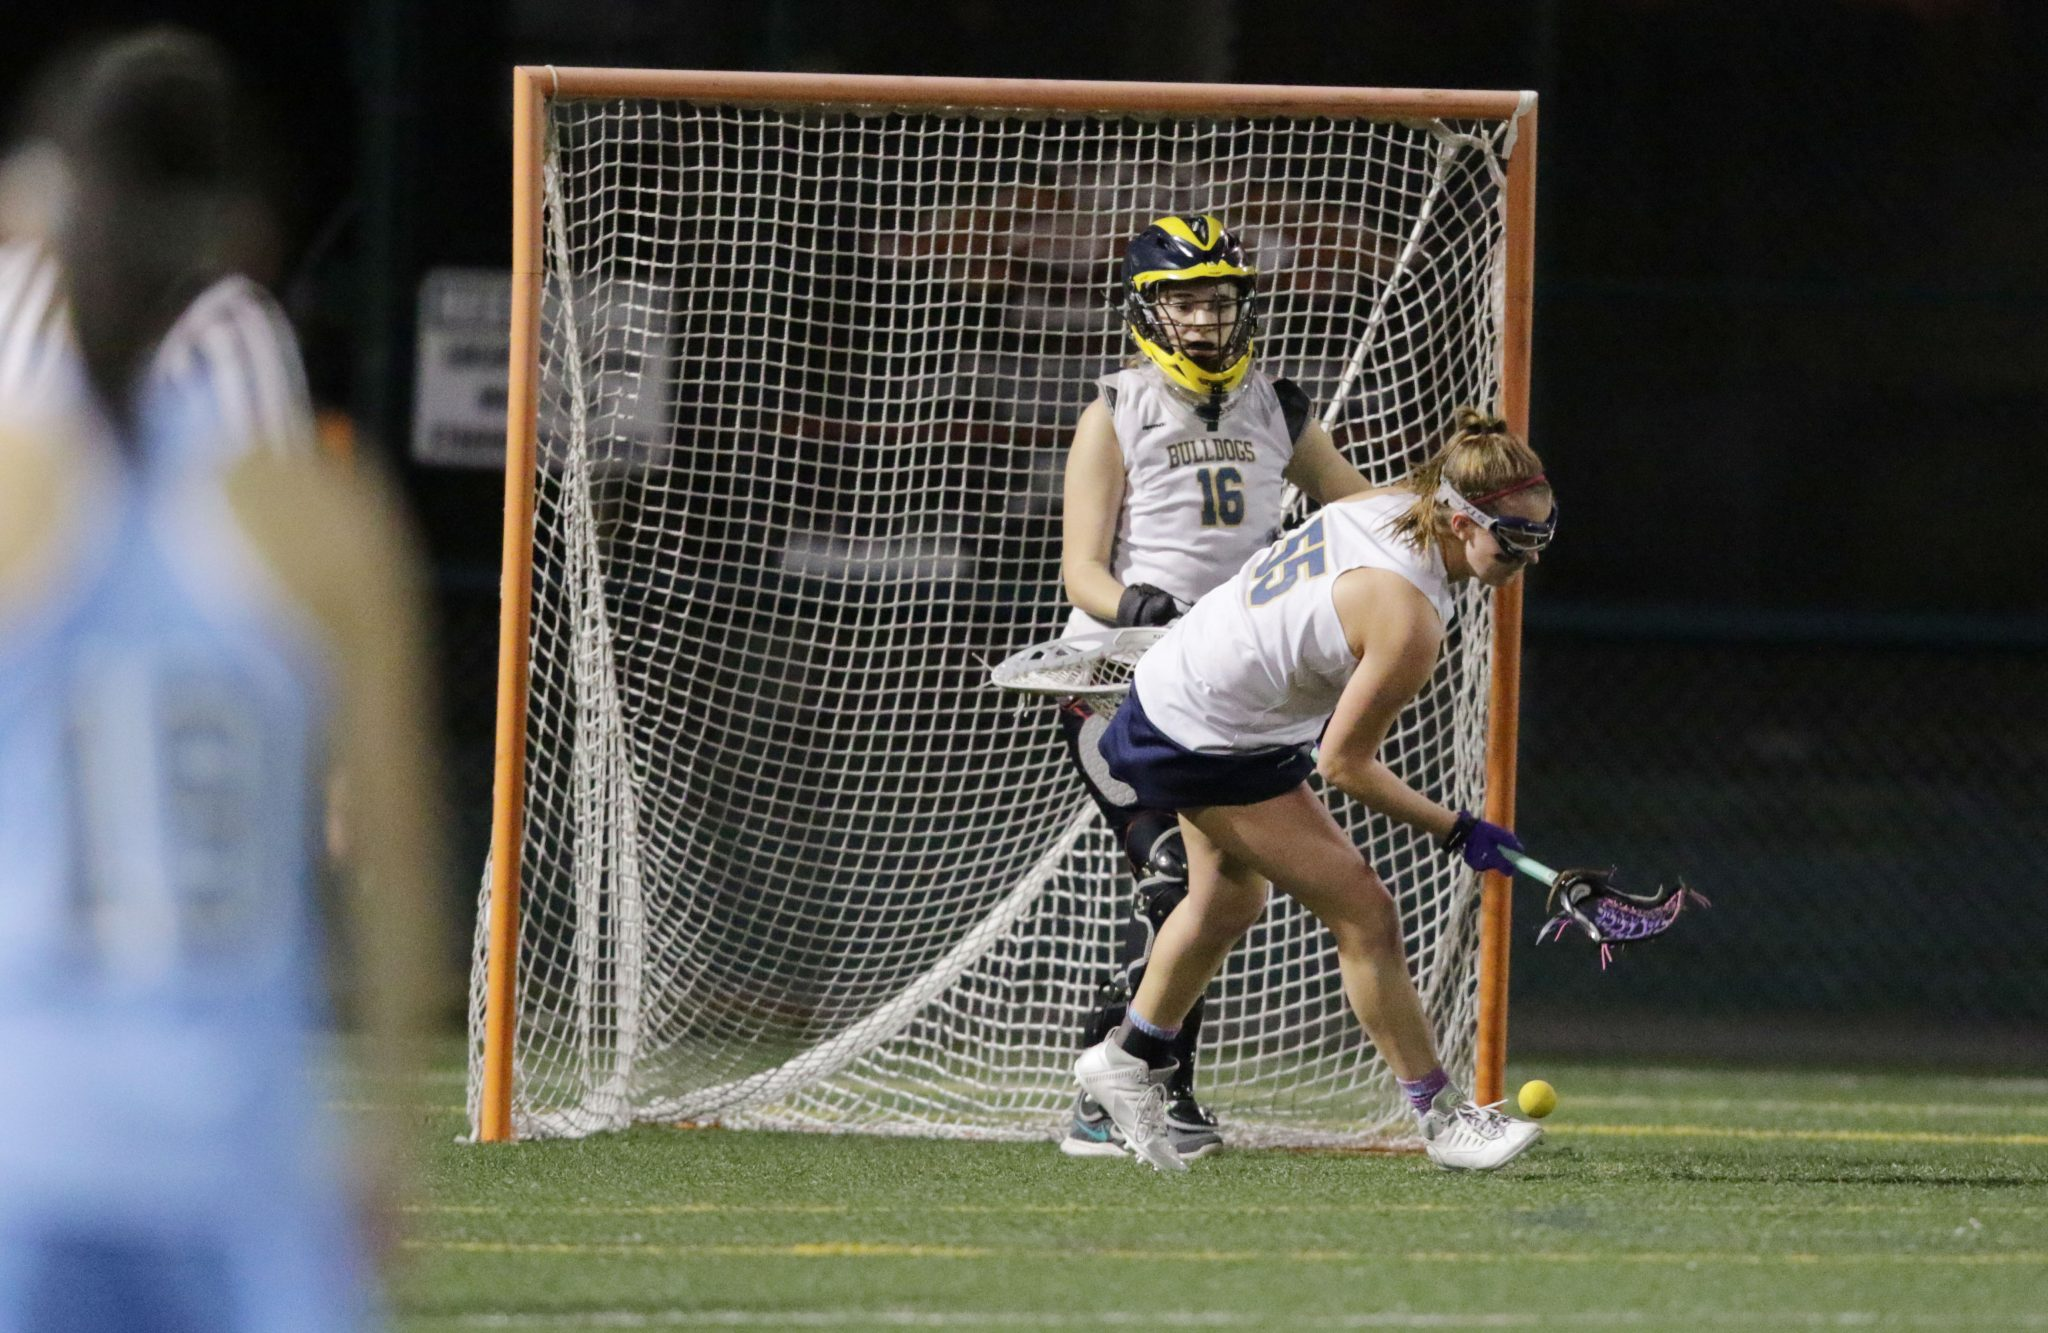 Alhambra's Theresa Hansen (16) watches on as teammate Daria Dragecevic clears a ground ball in front of goal in the Bulldogs' 19-3 loss to the Dougherty Valley Wildcats on Friday, March 25, 2016. The Wildcats are ranked 99th in the nation according to MaxPreps.com, and are currently in first place in the Diablo Foothill Athletic League with an undefeated record. (MARK FIERNER / Martinez Tribune)